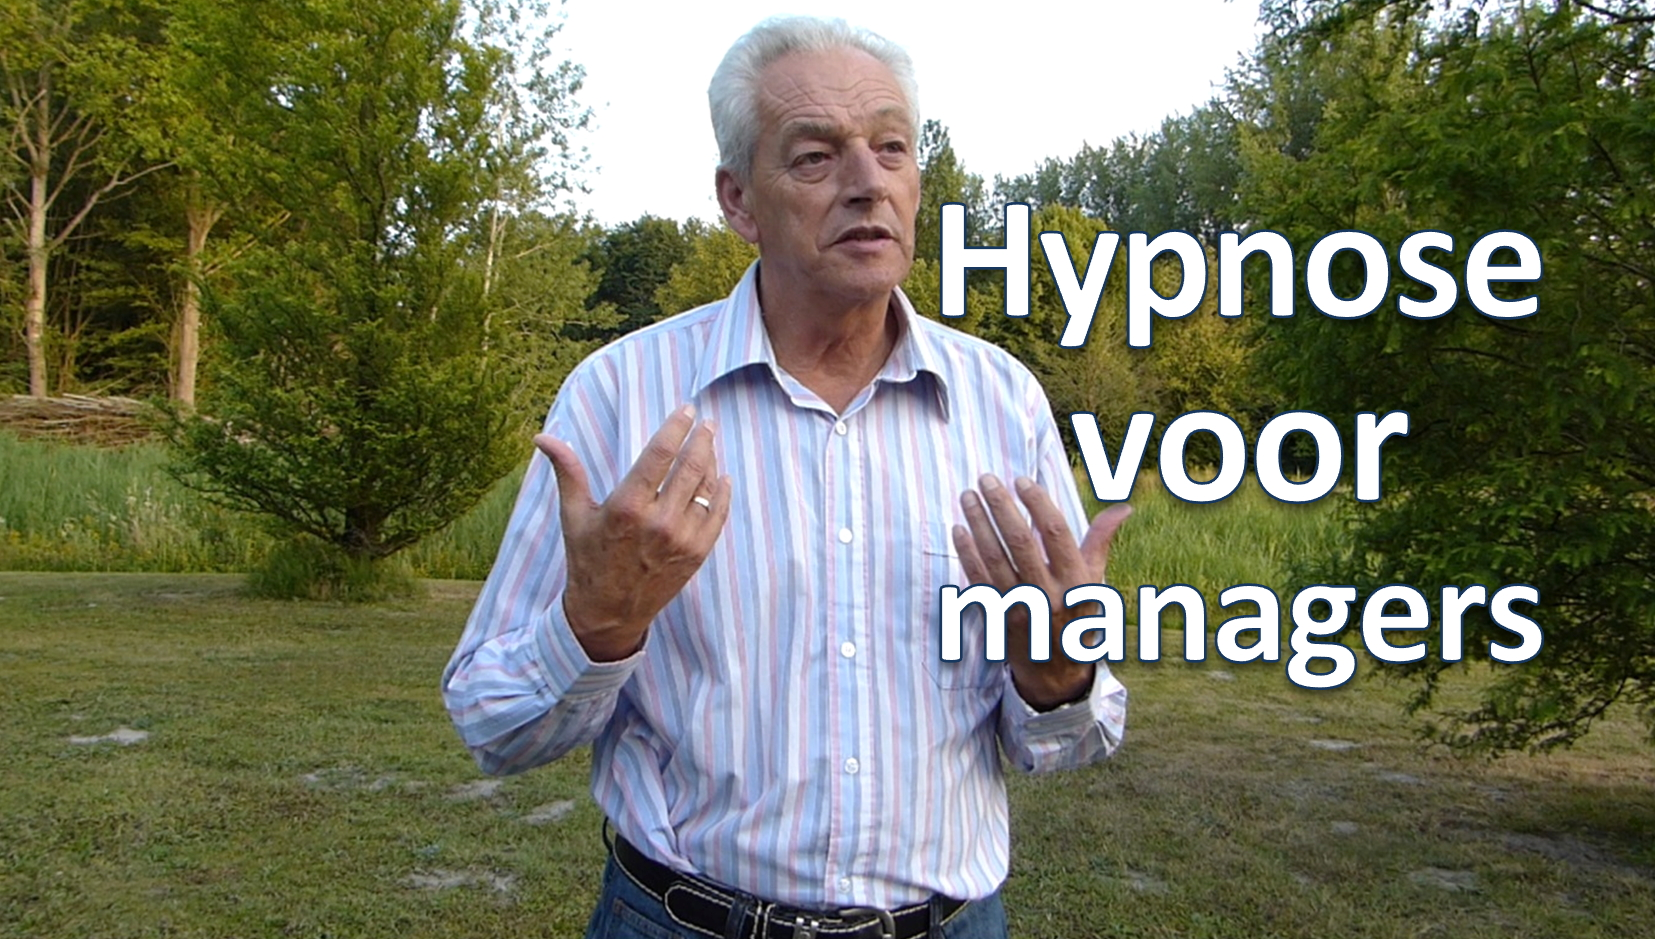 Hypnose voor managers